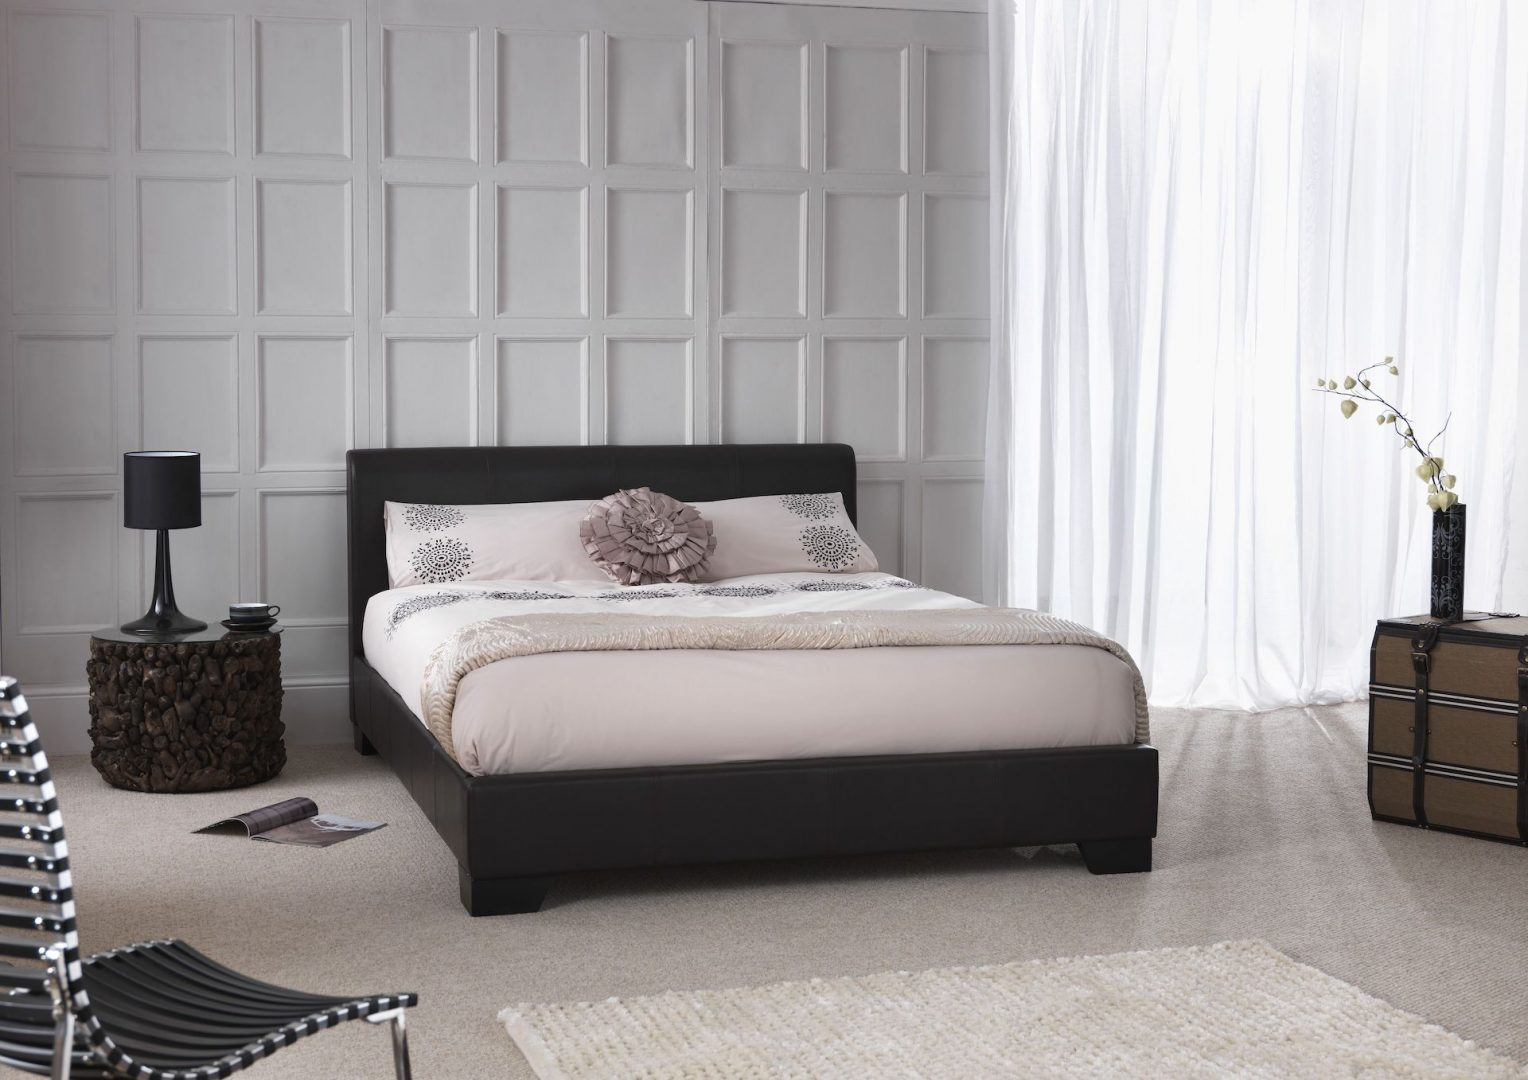 Parma Upholstered Faux Leather Bed